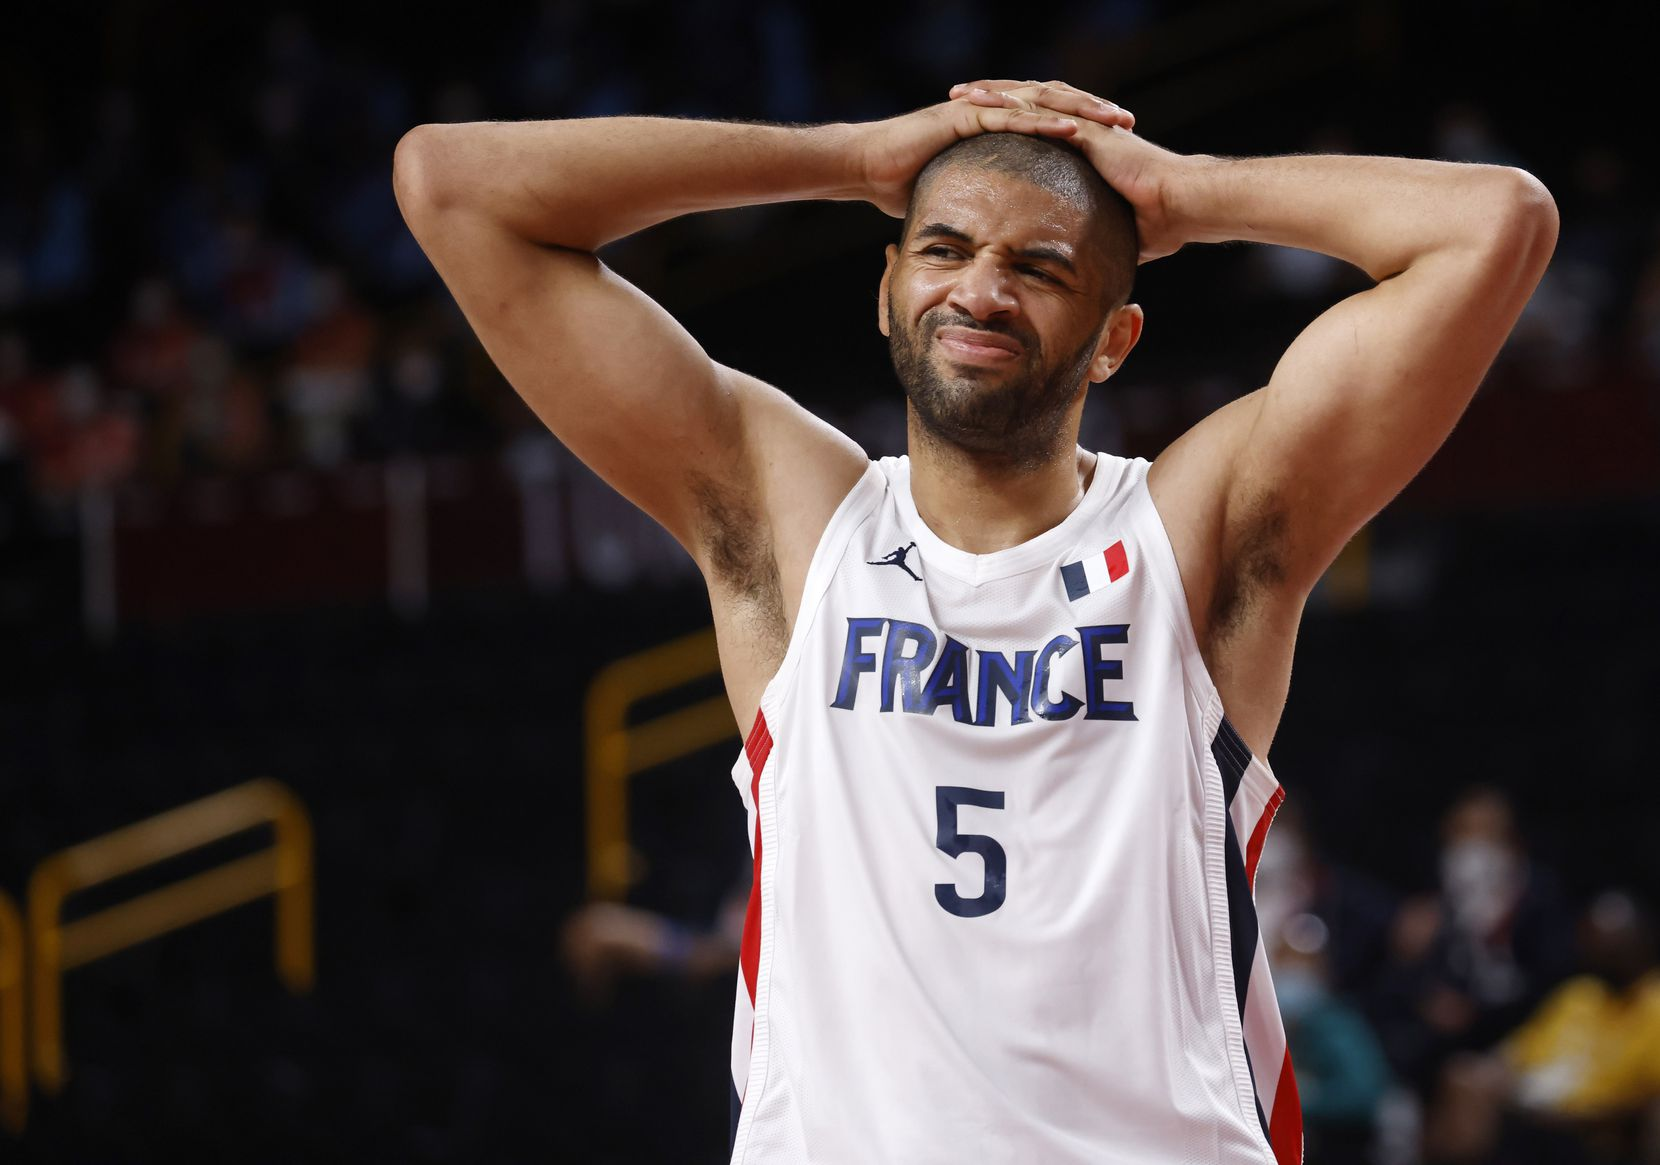 France's Nicols Batum (5) reacts to a teammate getting called for a foul in a game against Slovenia during the first half of a men's basketball semifinal at the postponed 2020 Tokyo Olympics at Saitama Super Arena, on Thursday, August 5, 2021, in Saitama, Japan. (Vernon Bryant/The Dallas Morning News)